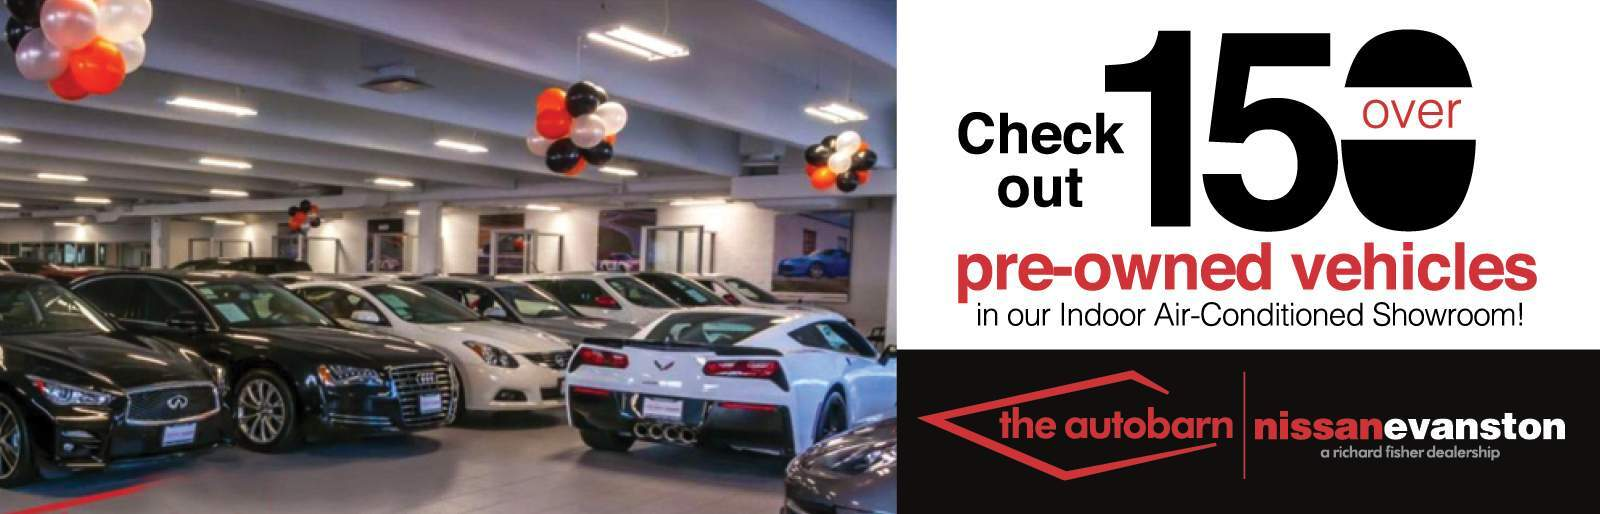 Indoor pre-owned showroom